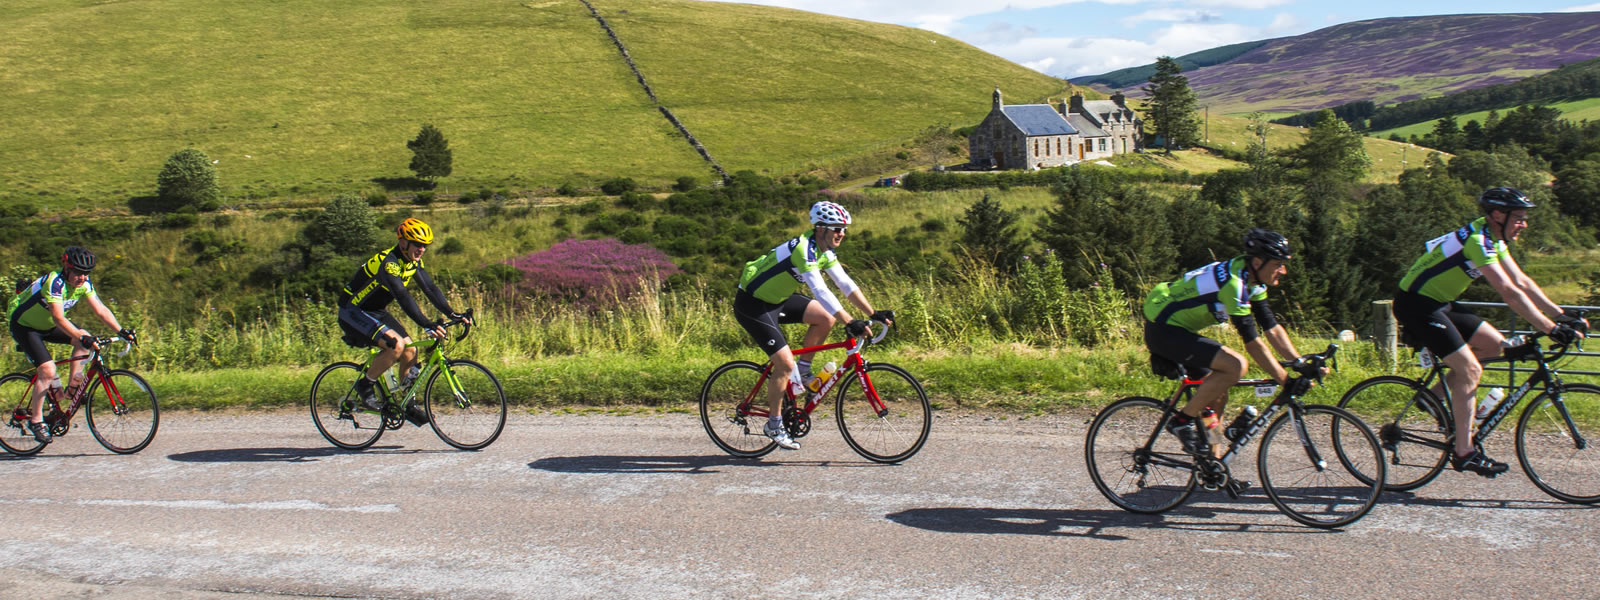 cycle in the grampian highlands